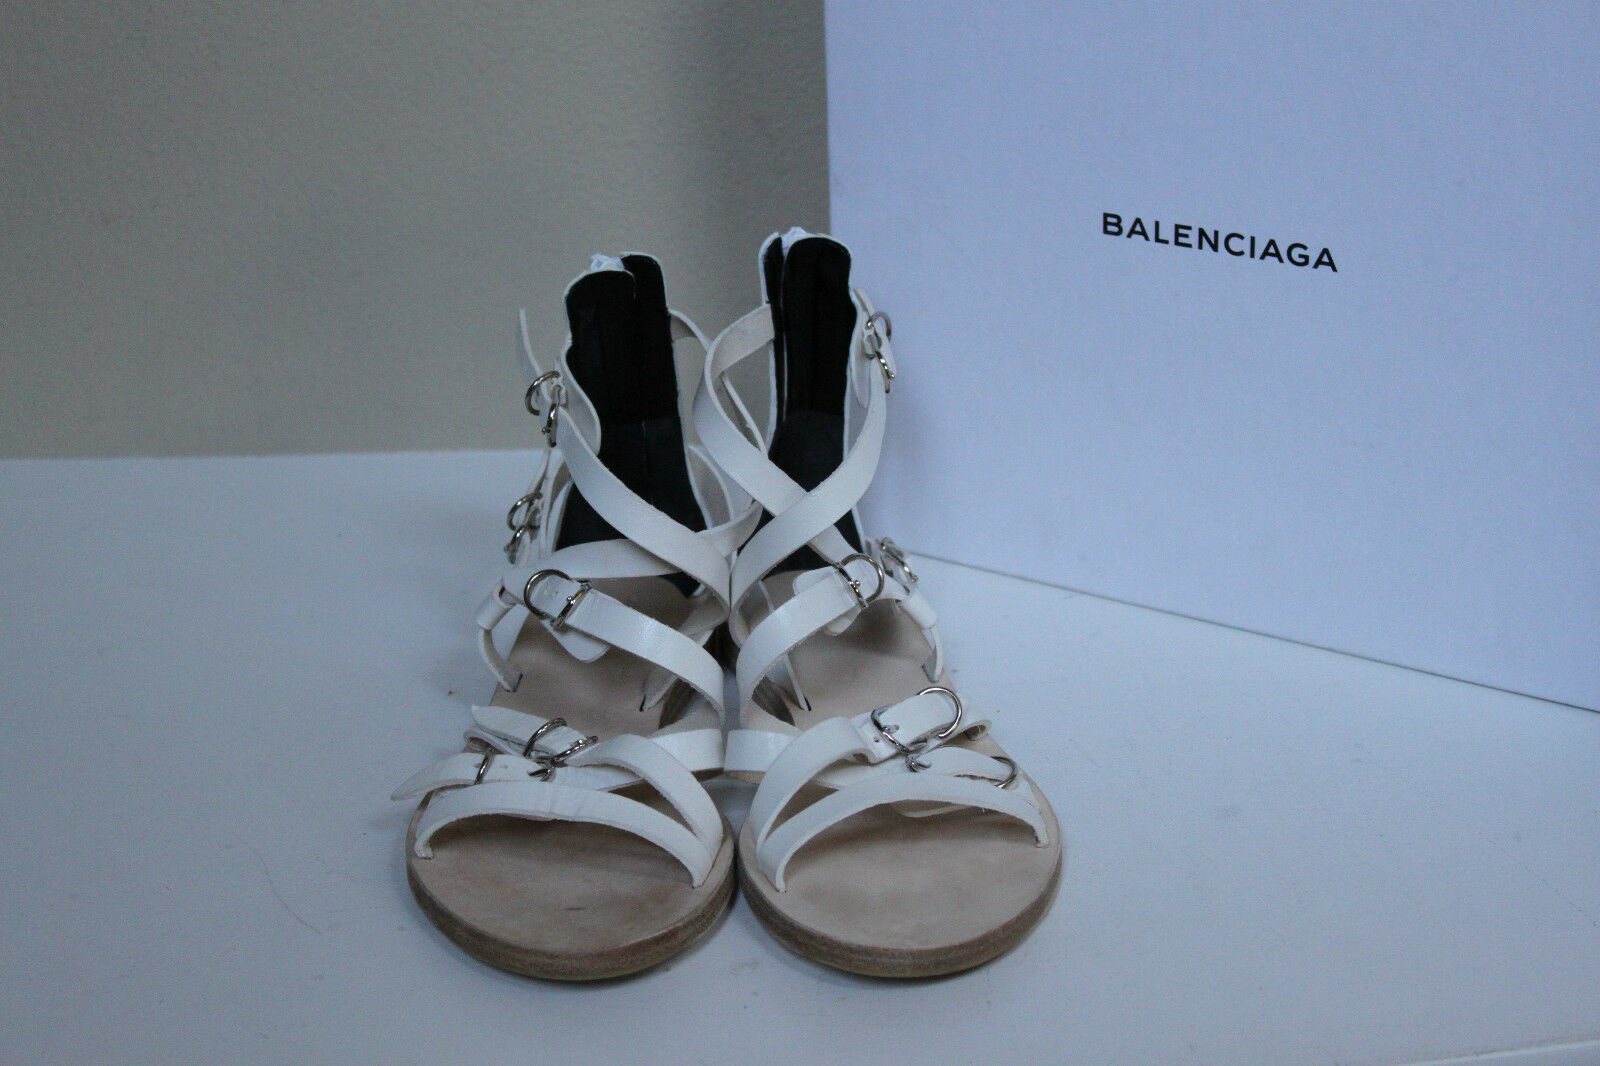 New Balenciaga Bickle bianca Leather Gladiator Ankle Ankle Ankle Sandals scarpe sz 9.5   39.5 bcd328